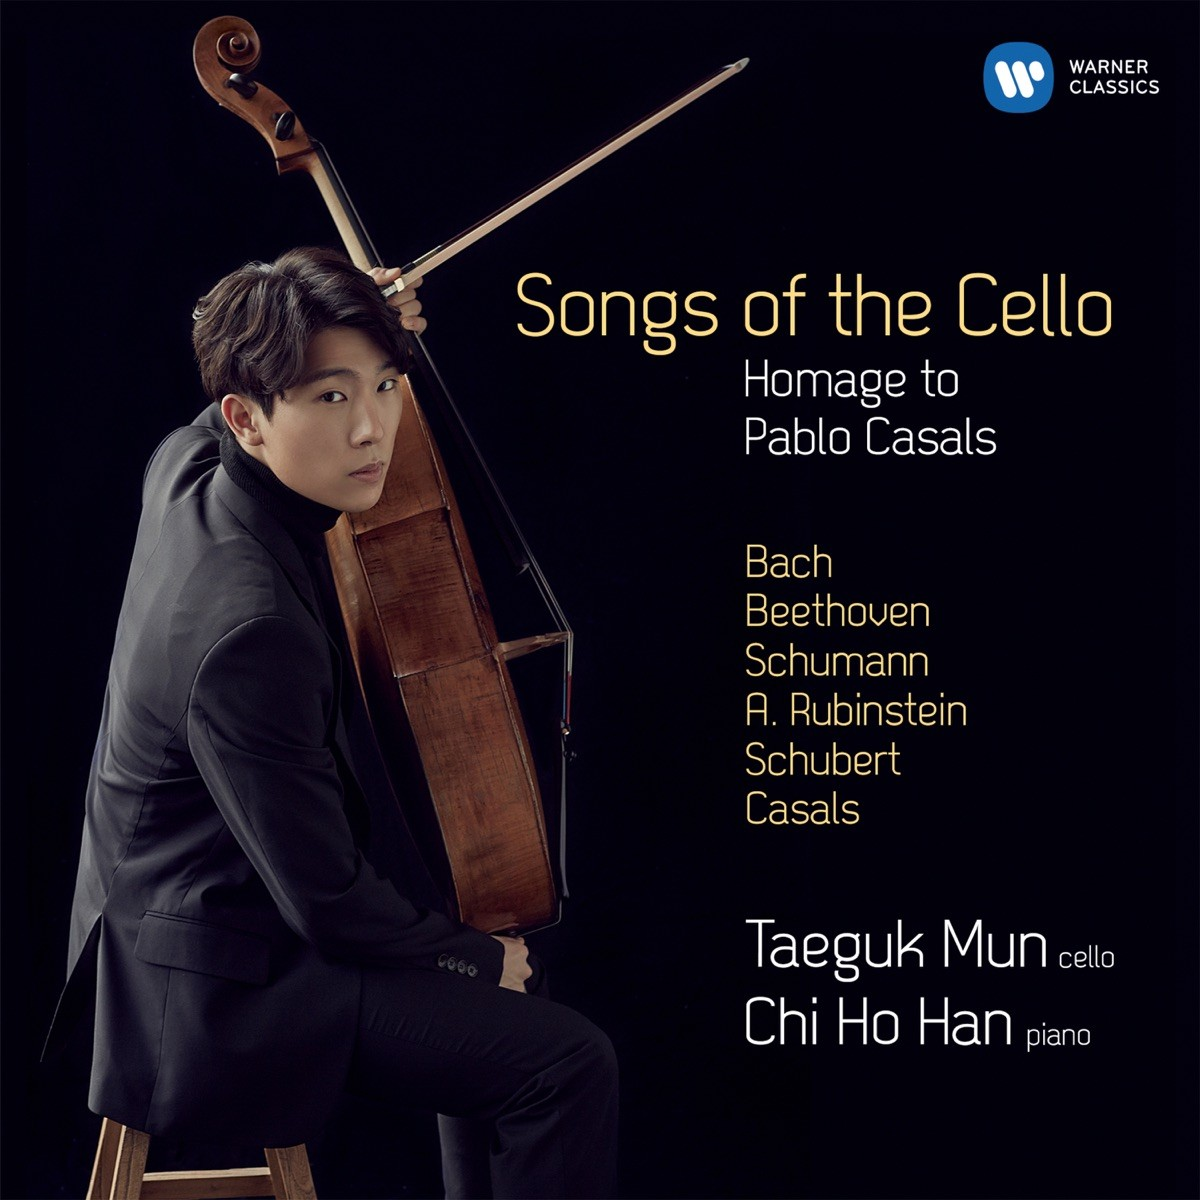 Taeguk Mun & Chi Ho Han - Songs of the Cello CD - 9029563313